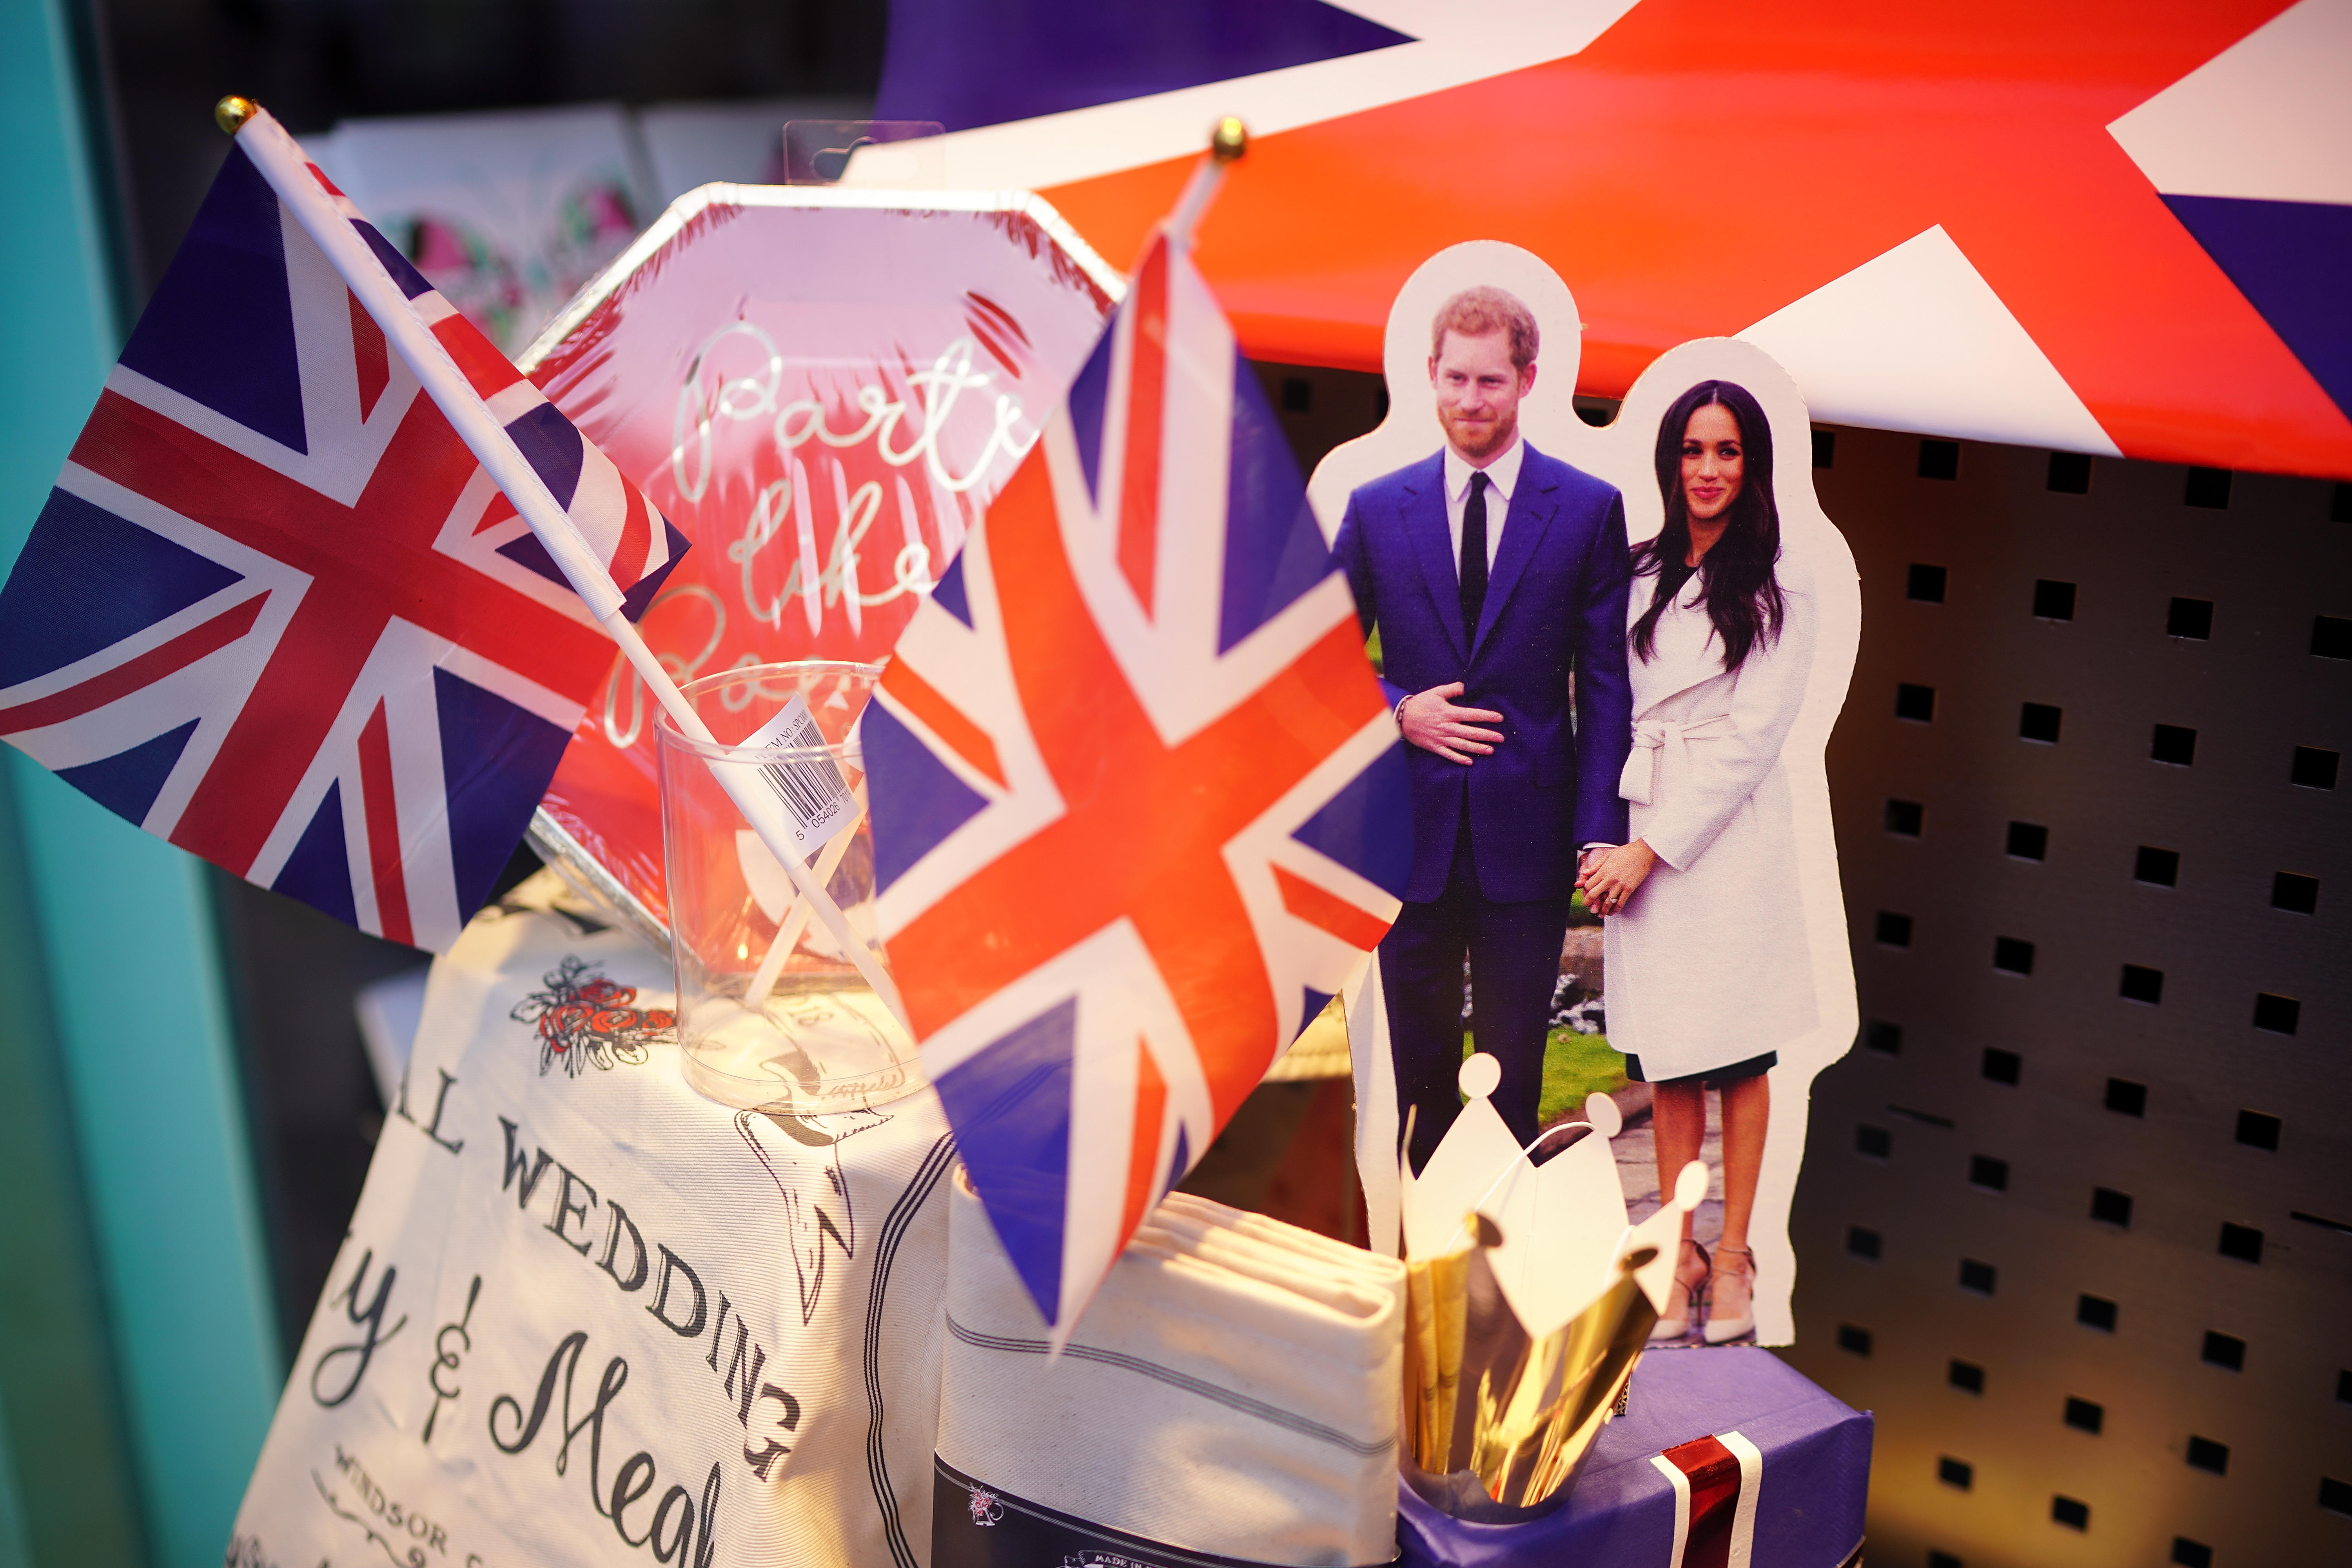 The royal wedding: how to watch Prince Harry and Meghan Markle's big day